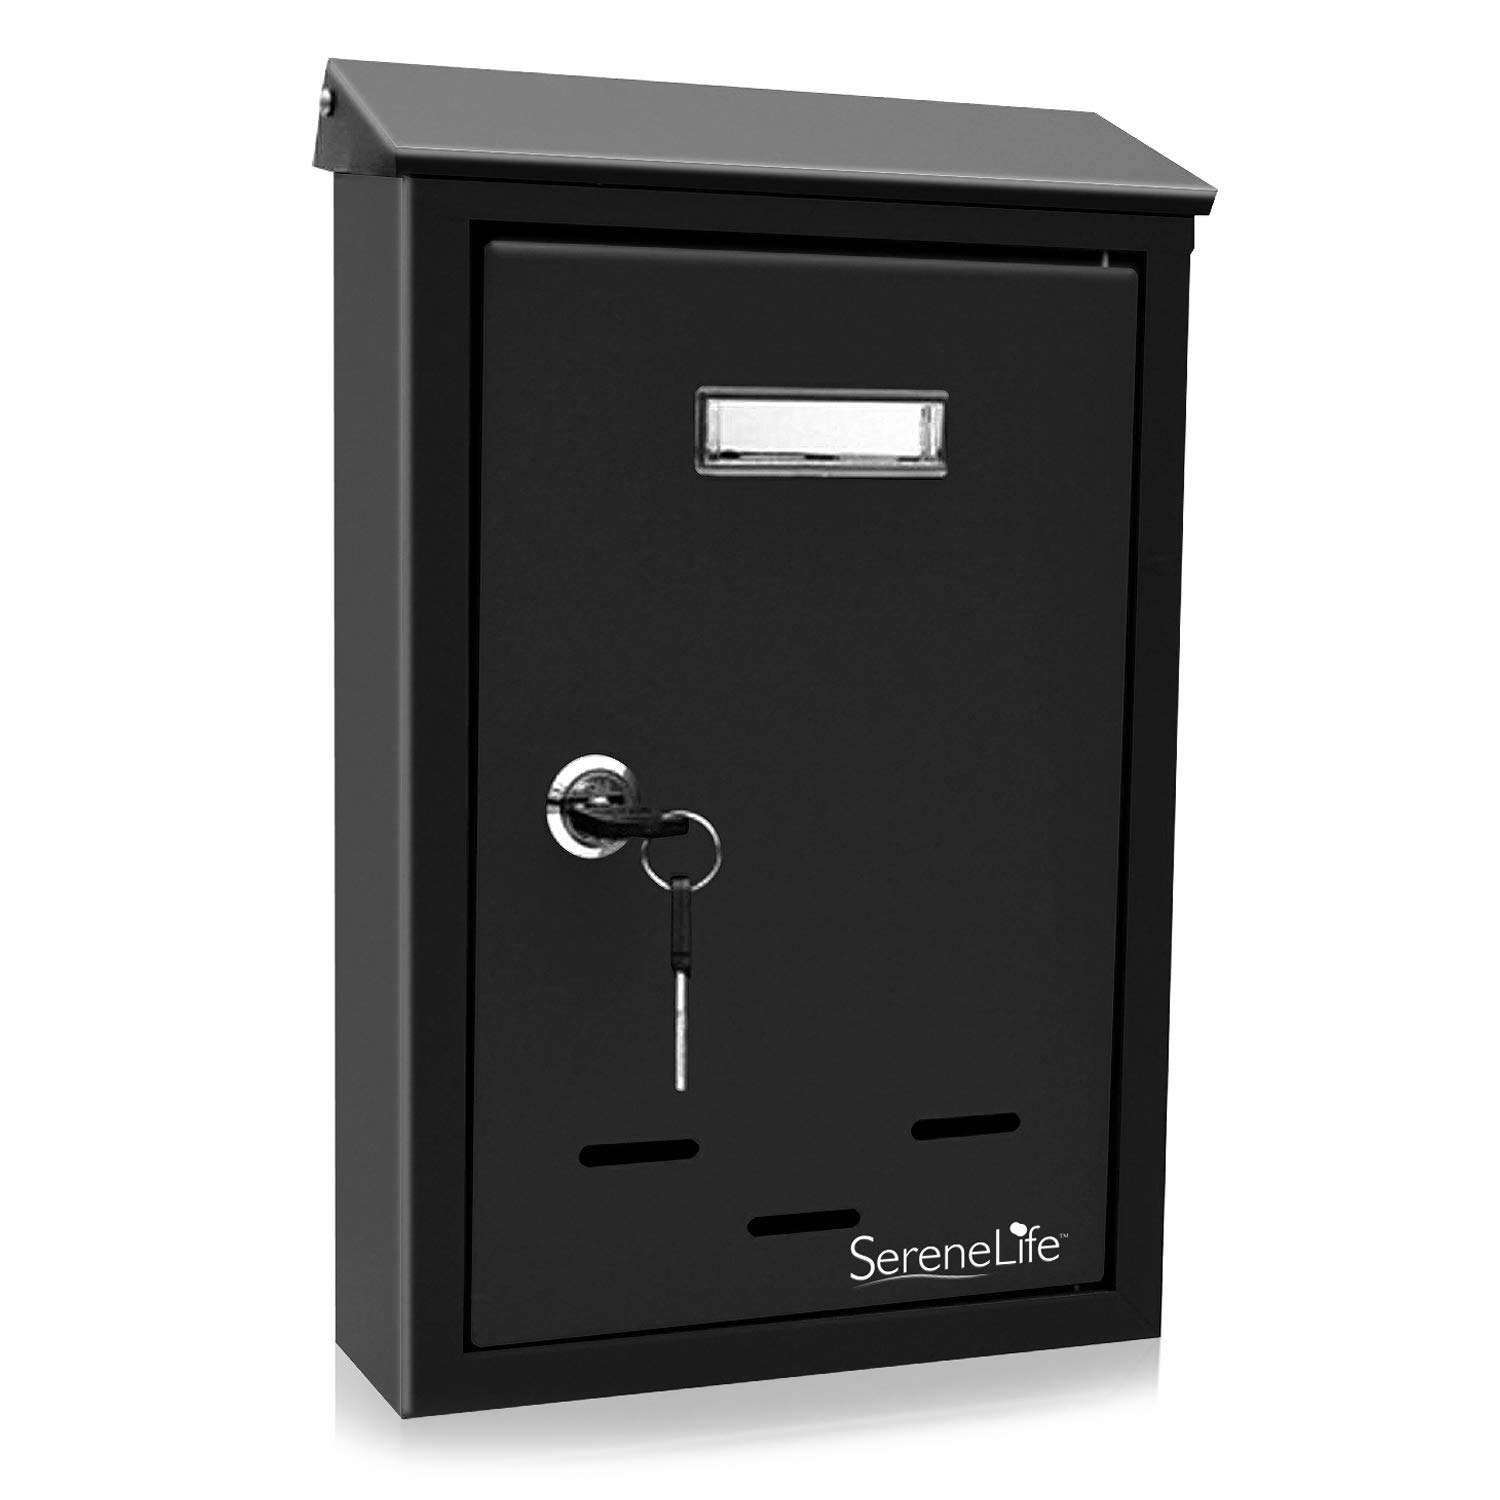 Modern Wall Mount Locking Mailbox - Indoor Outdoor Universal Vertical Mounted Mail box - Galvanized Large Capacity Home/Office Business Drop Slot with Secure Lock Keys - Serenelife SLMAB24 (Black)